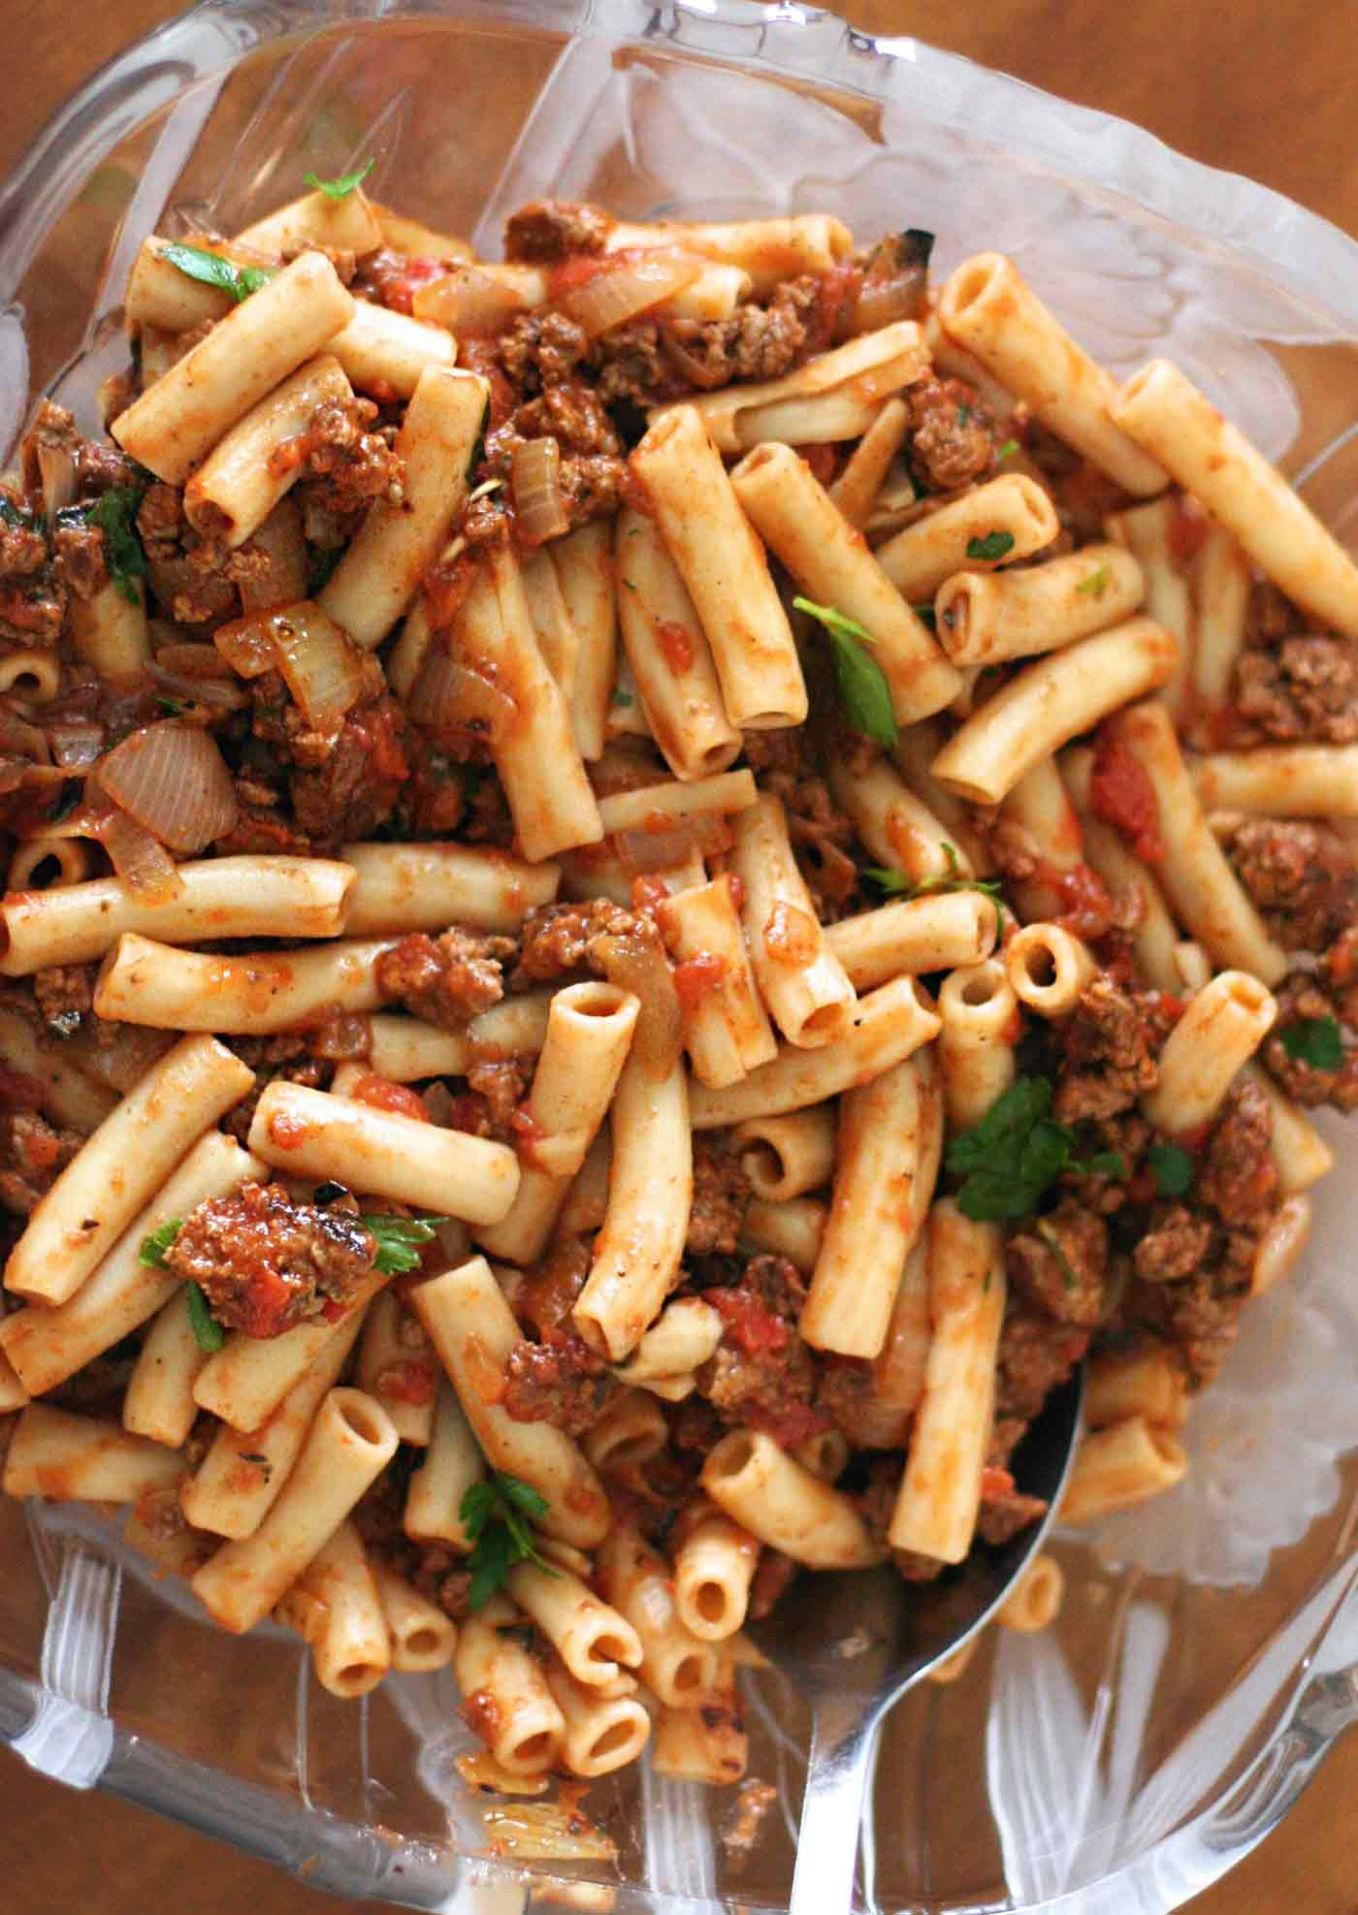 Penne Pasta with Meat Sauce - Recipes Pork With Pasta